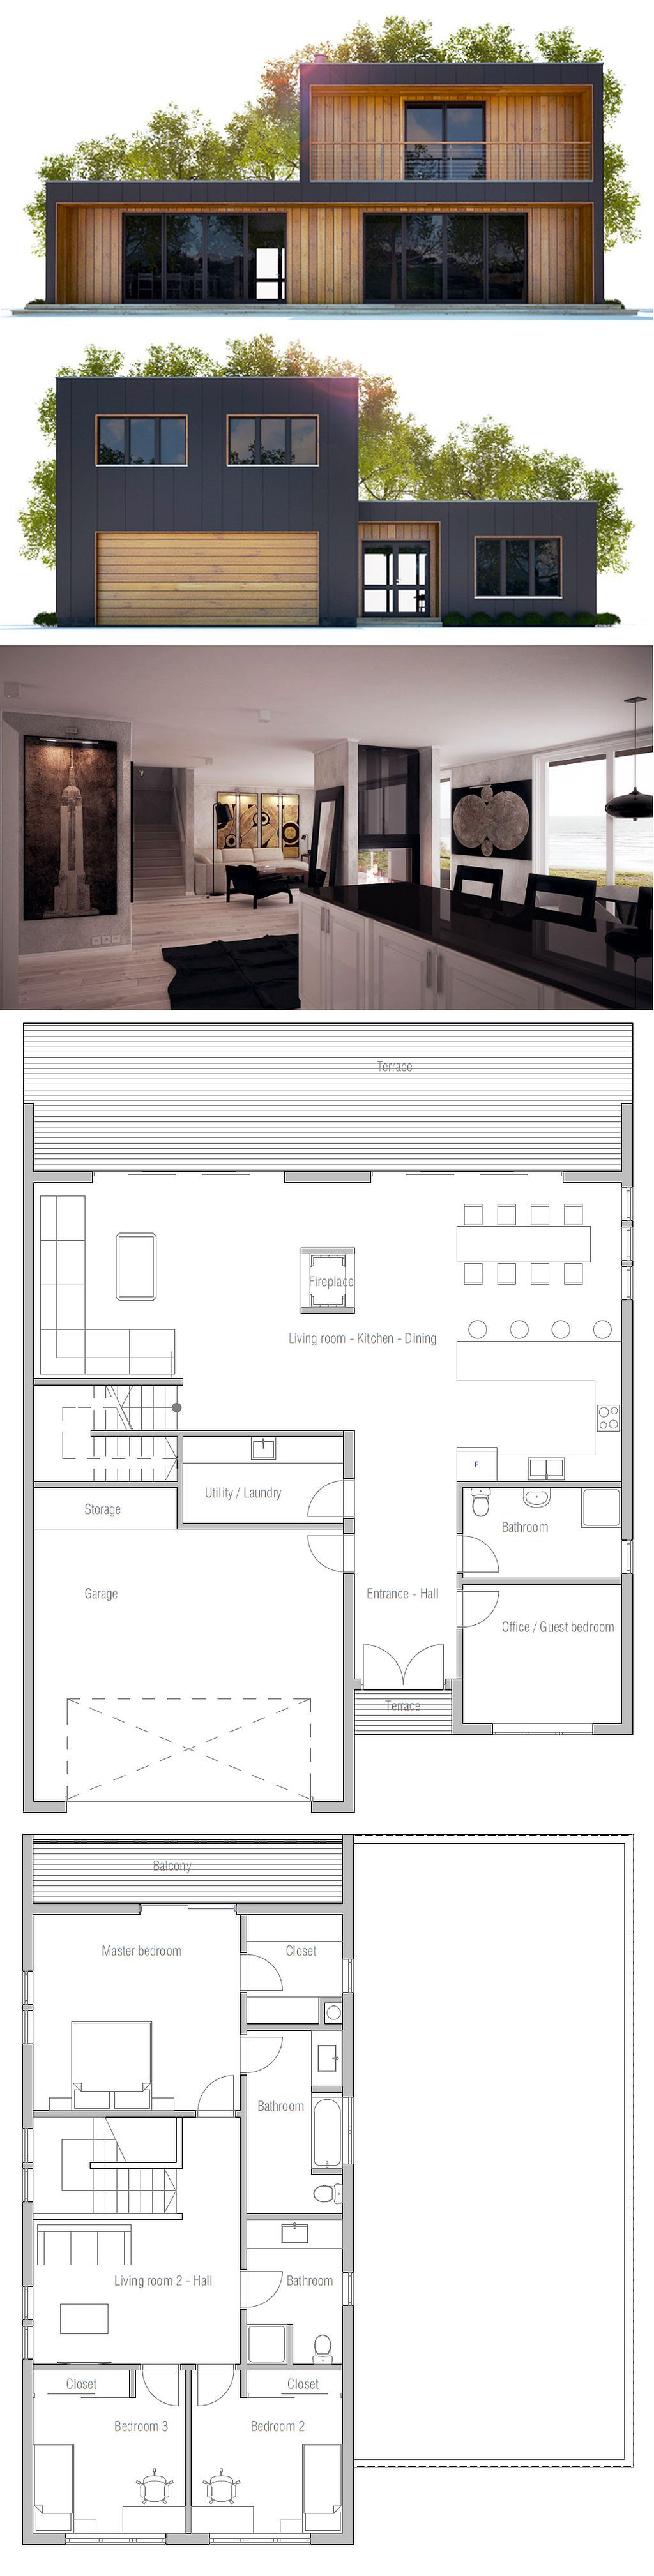 Container House - Gorgeous 87 Shipping Container House Plans Ideas ...